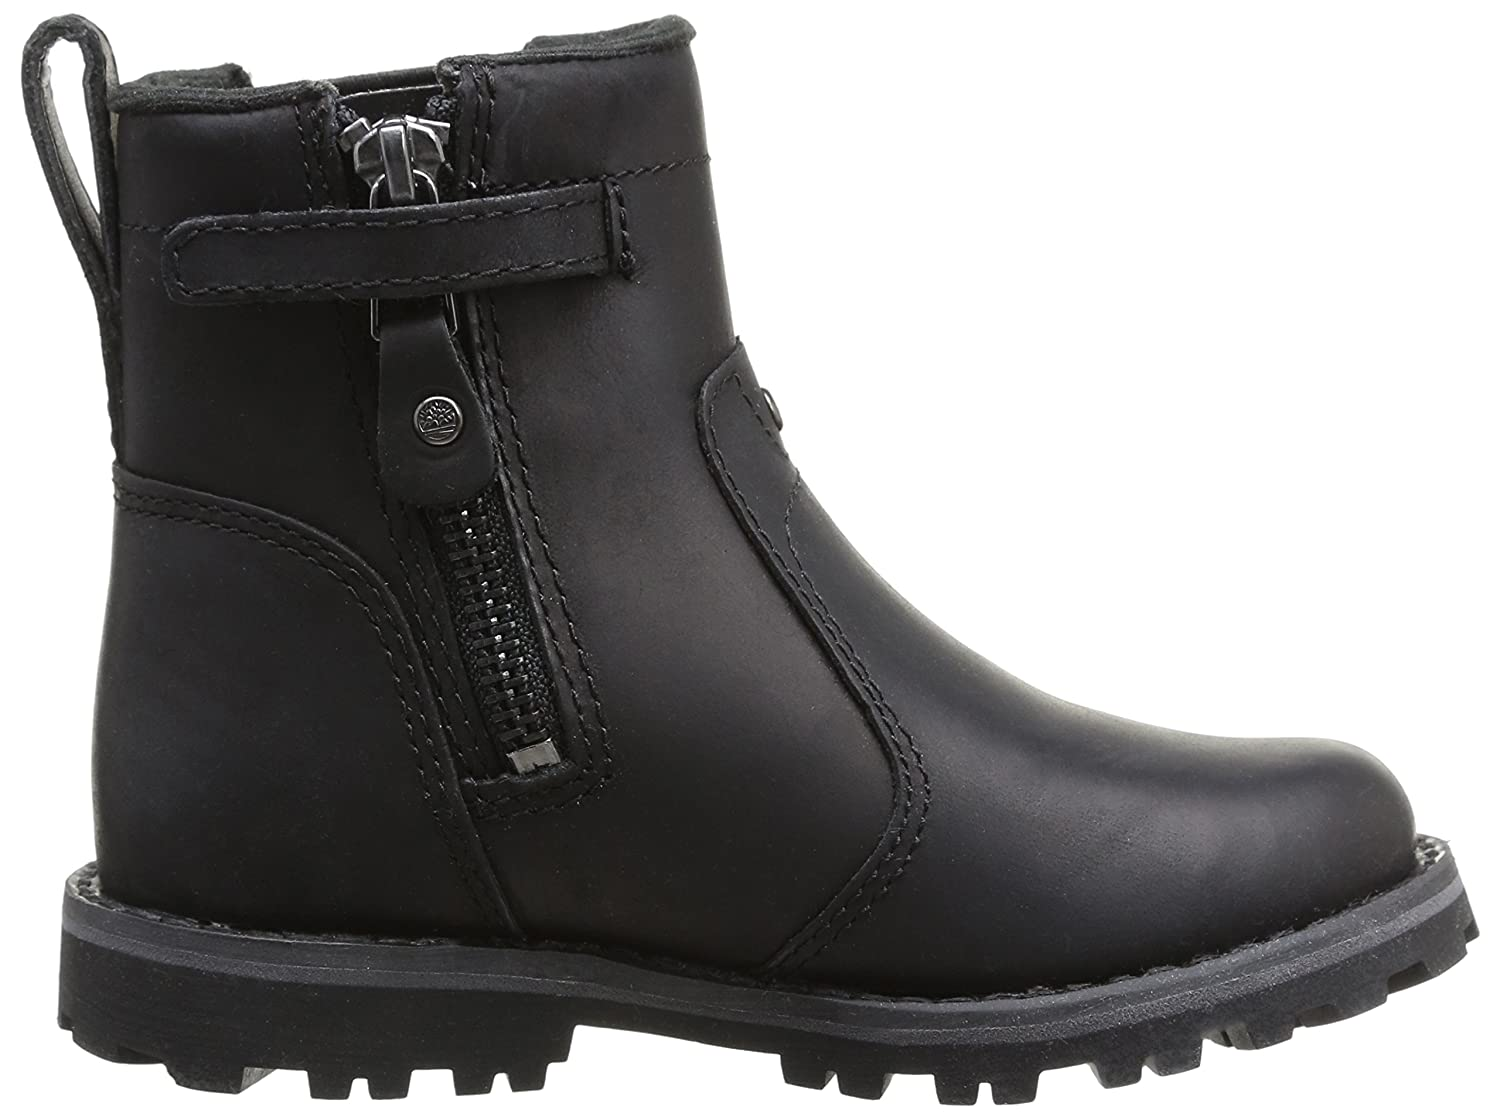 Timberland Asphalt Trail Chelsea, Unisex-Child Boots, Black, 0.5 UK Child:  Amazon.co.uk: Shoes & Bags